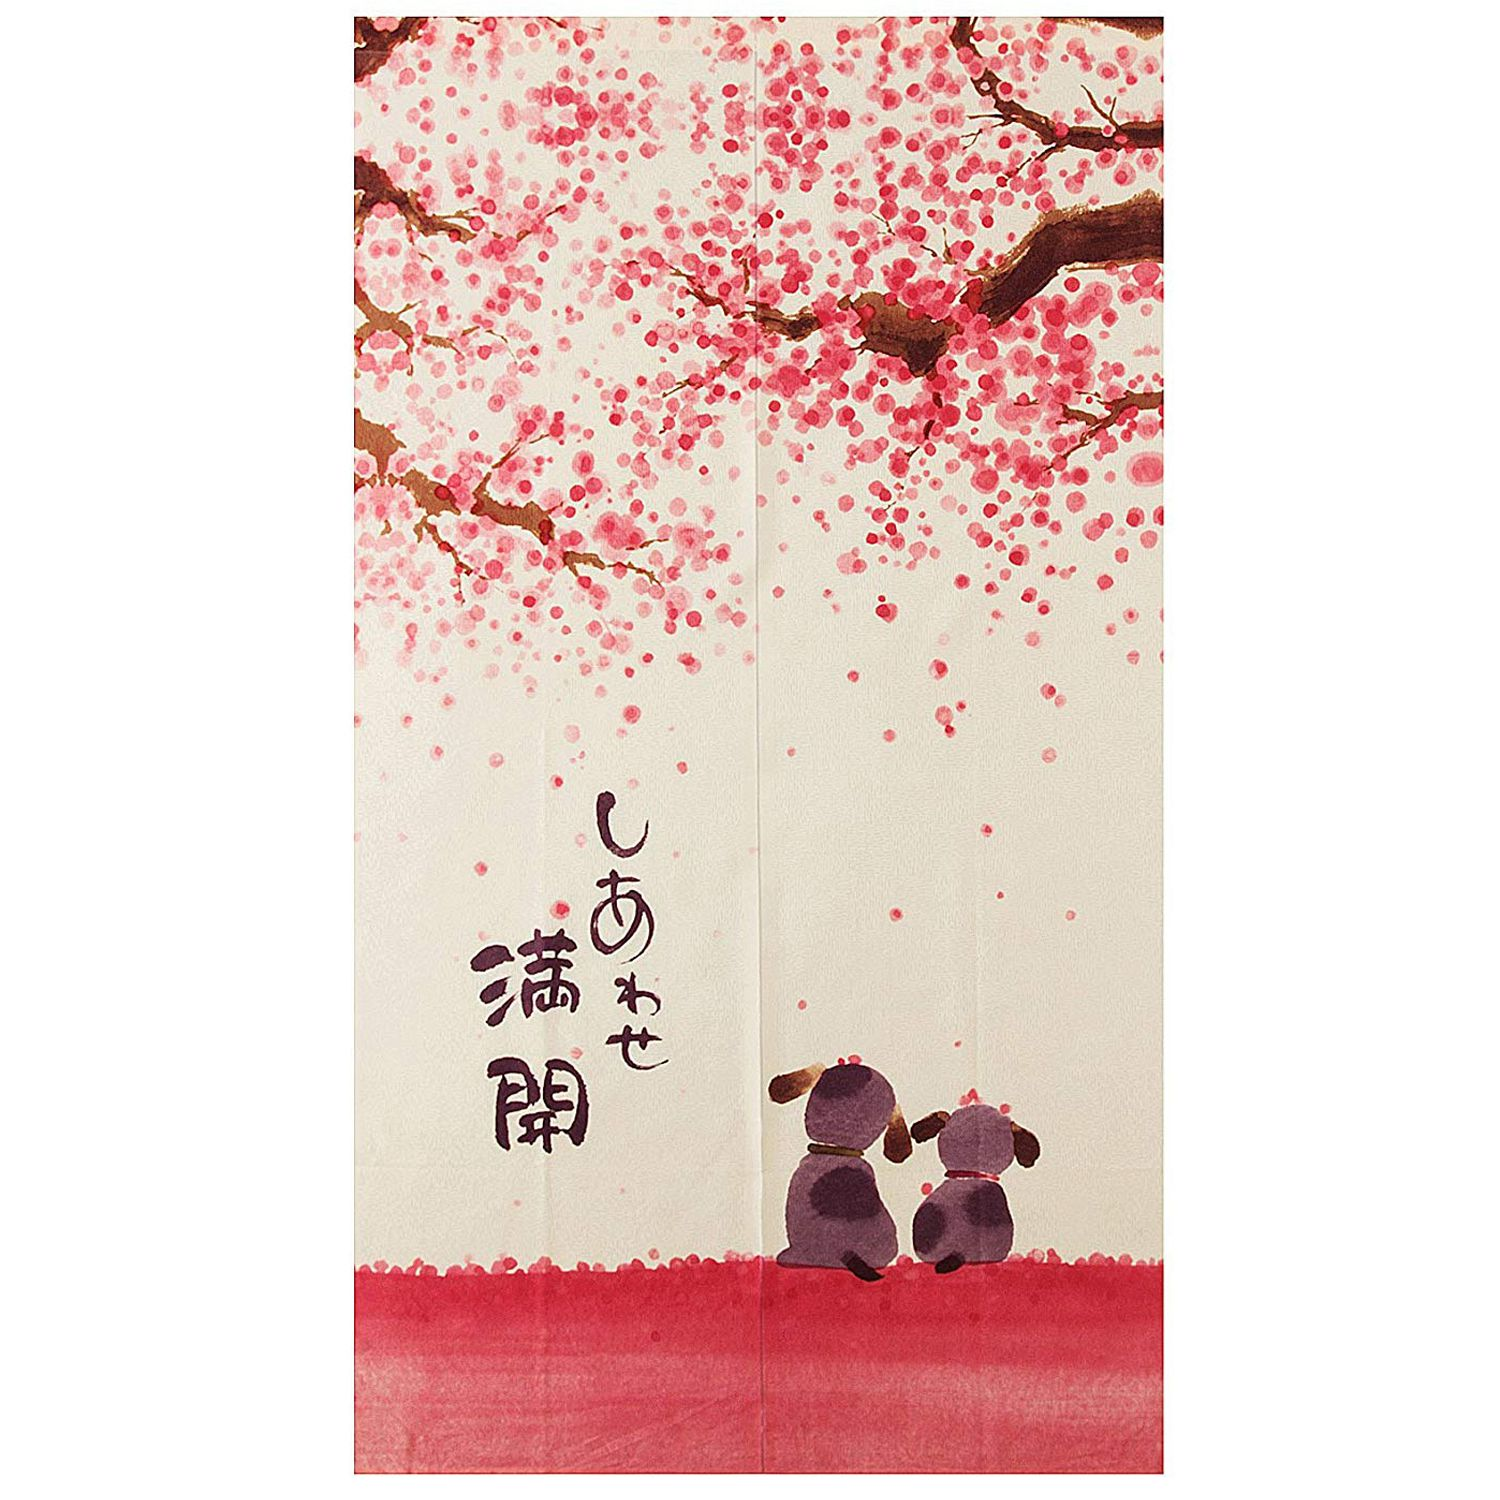 Hot XD-Japanese Style Doorway Curtain 85X150Cm Happy Dogs Cherry Blossom